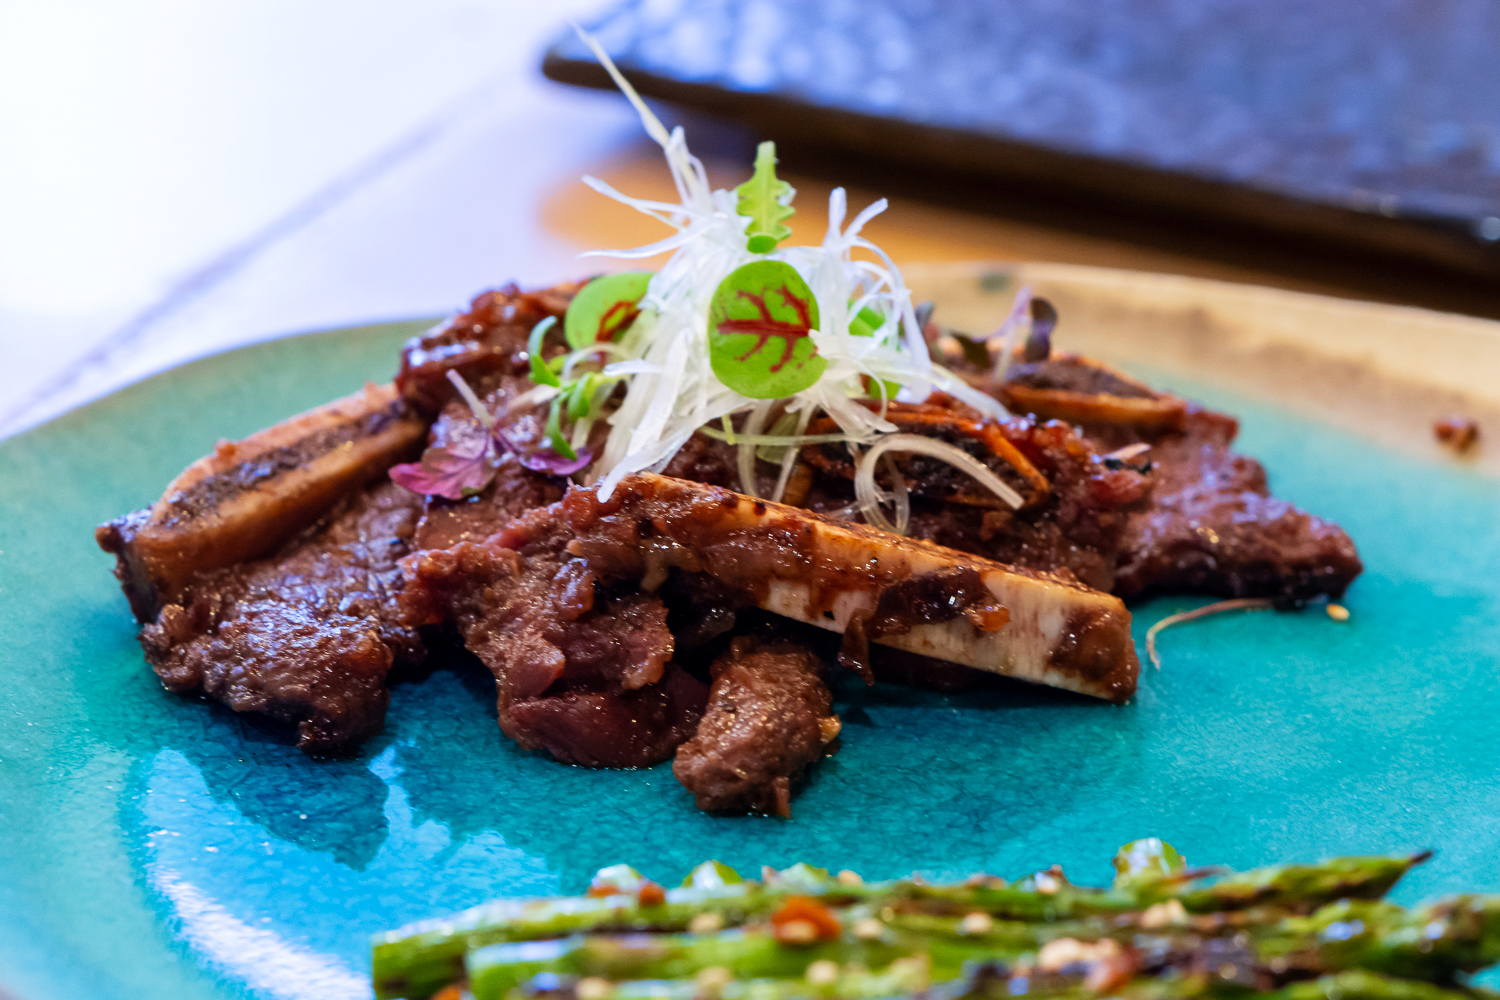 galbi (ribs) and asparagus